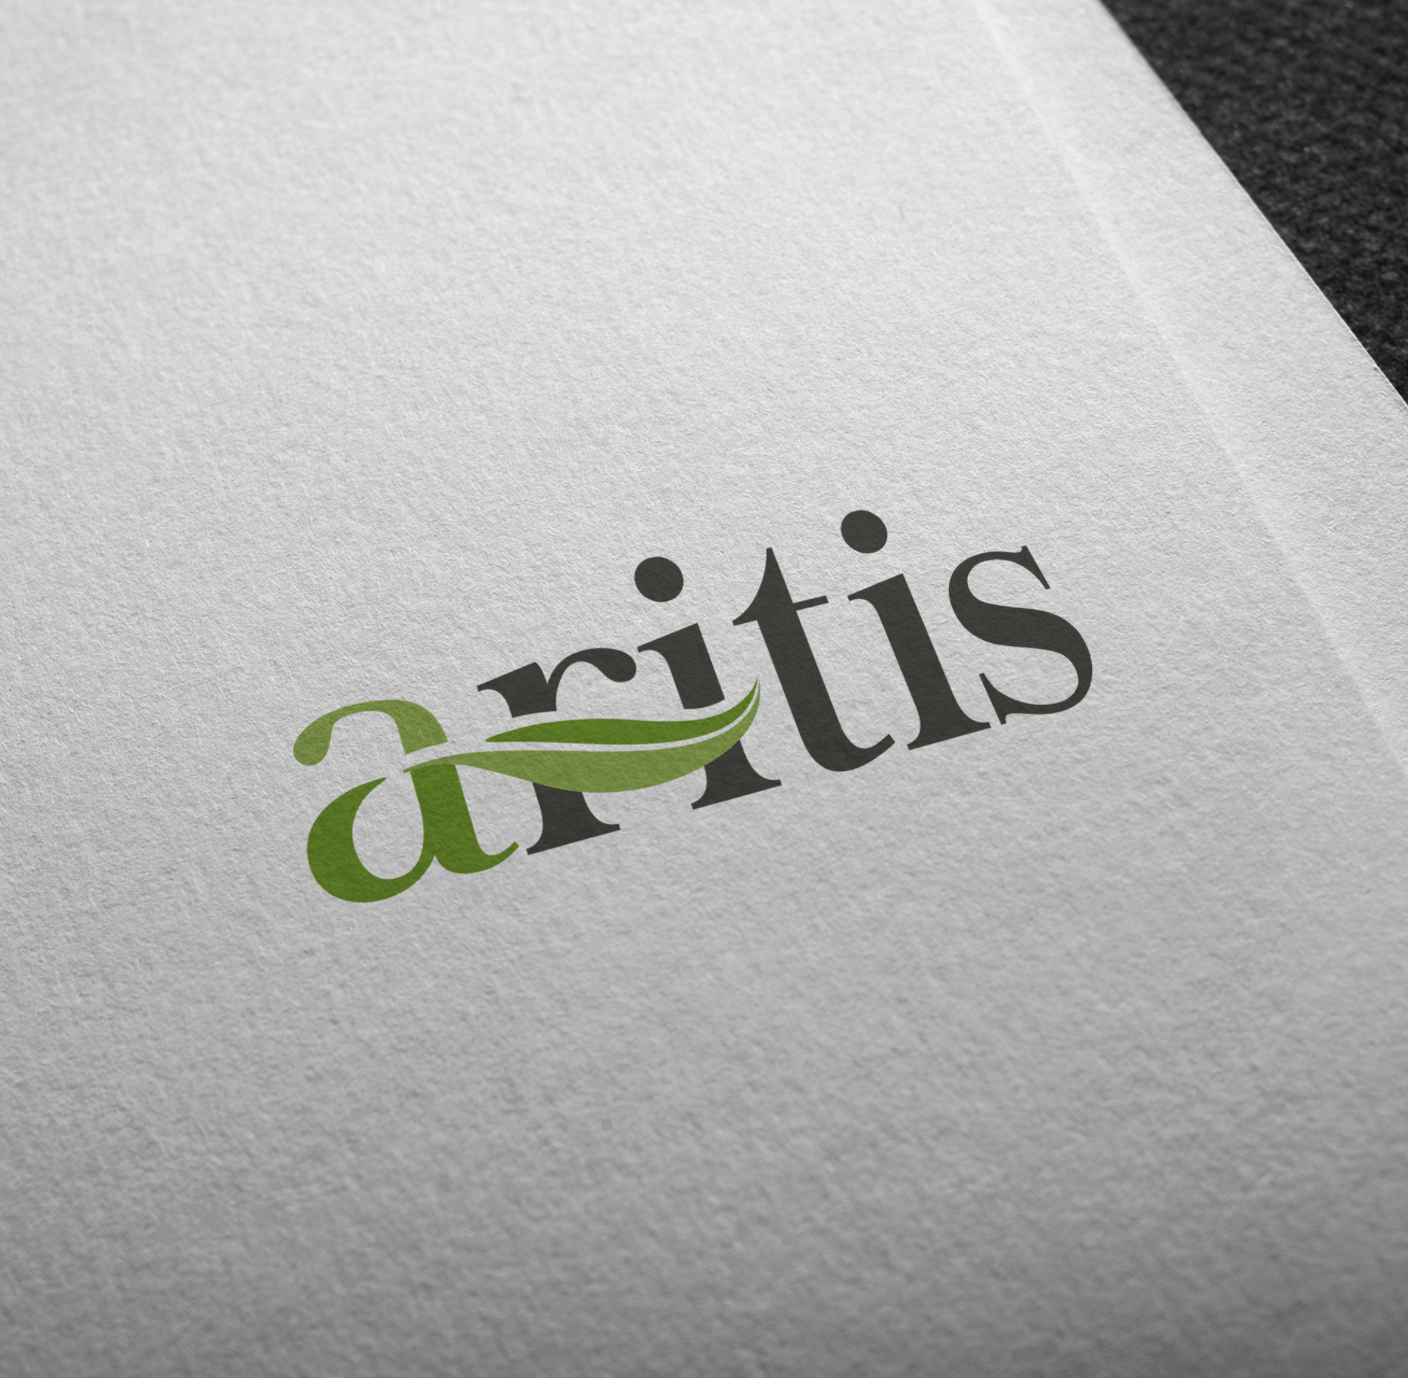 Identity design done for a joint support product